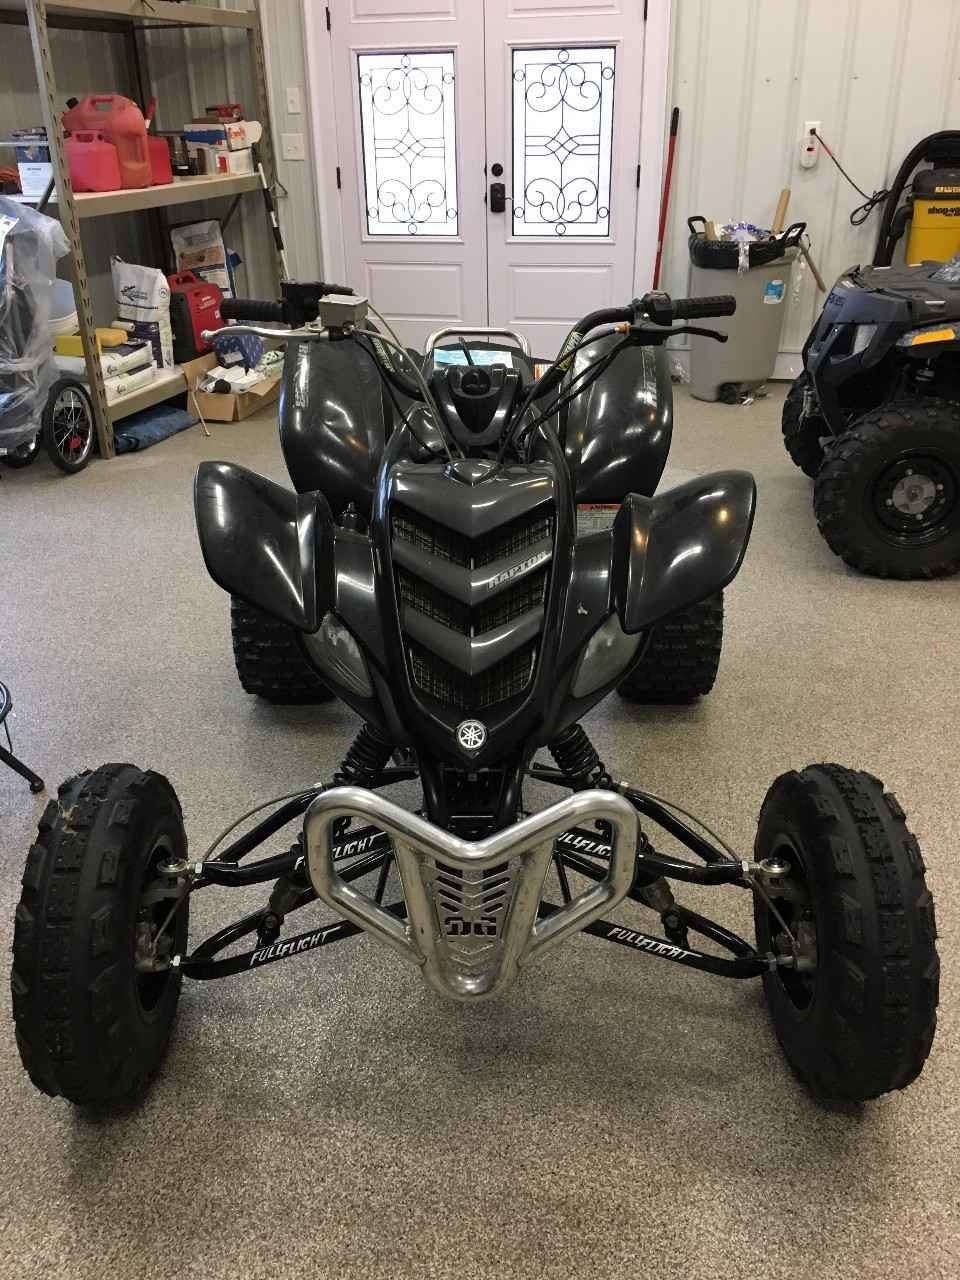 used 2010 yamaha raptor 660 atvs for sale in ohio 660r raptor new rh pinterest com 2005 yamaha raptor 660 service manual 2005 yamaha raptor 660 service manual